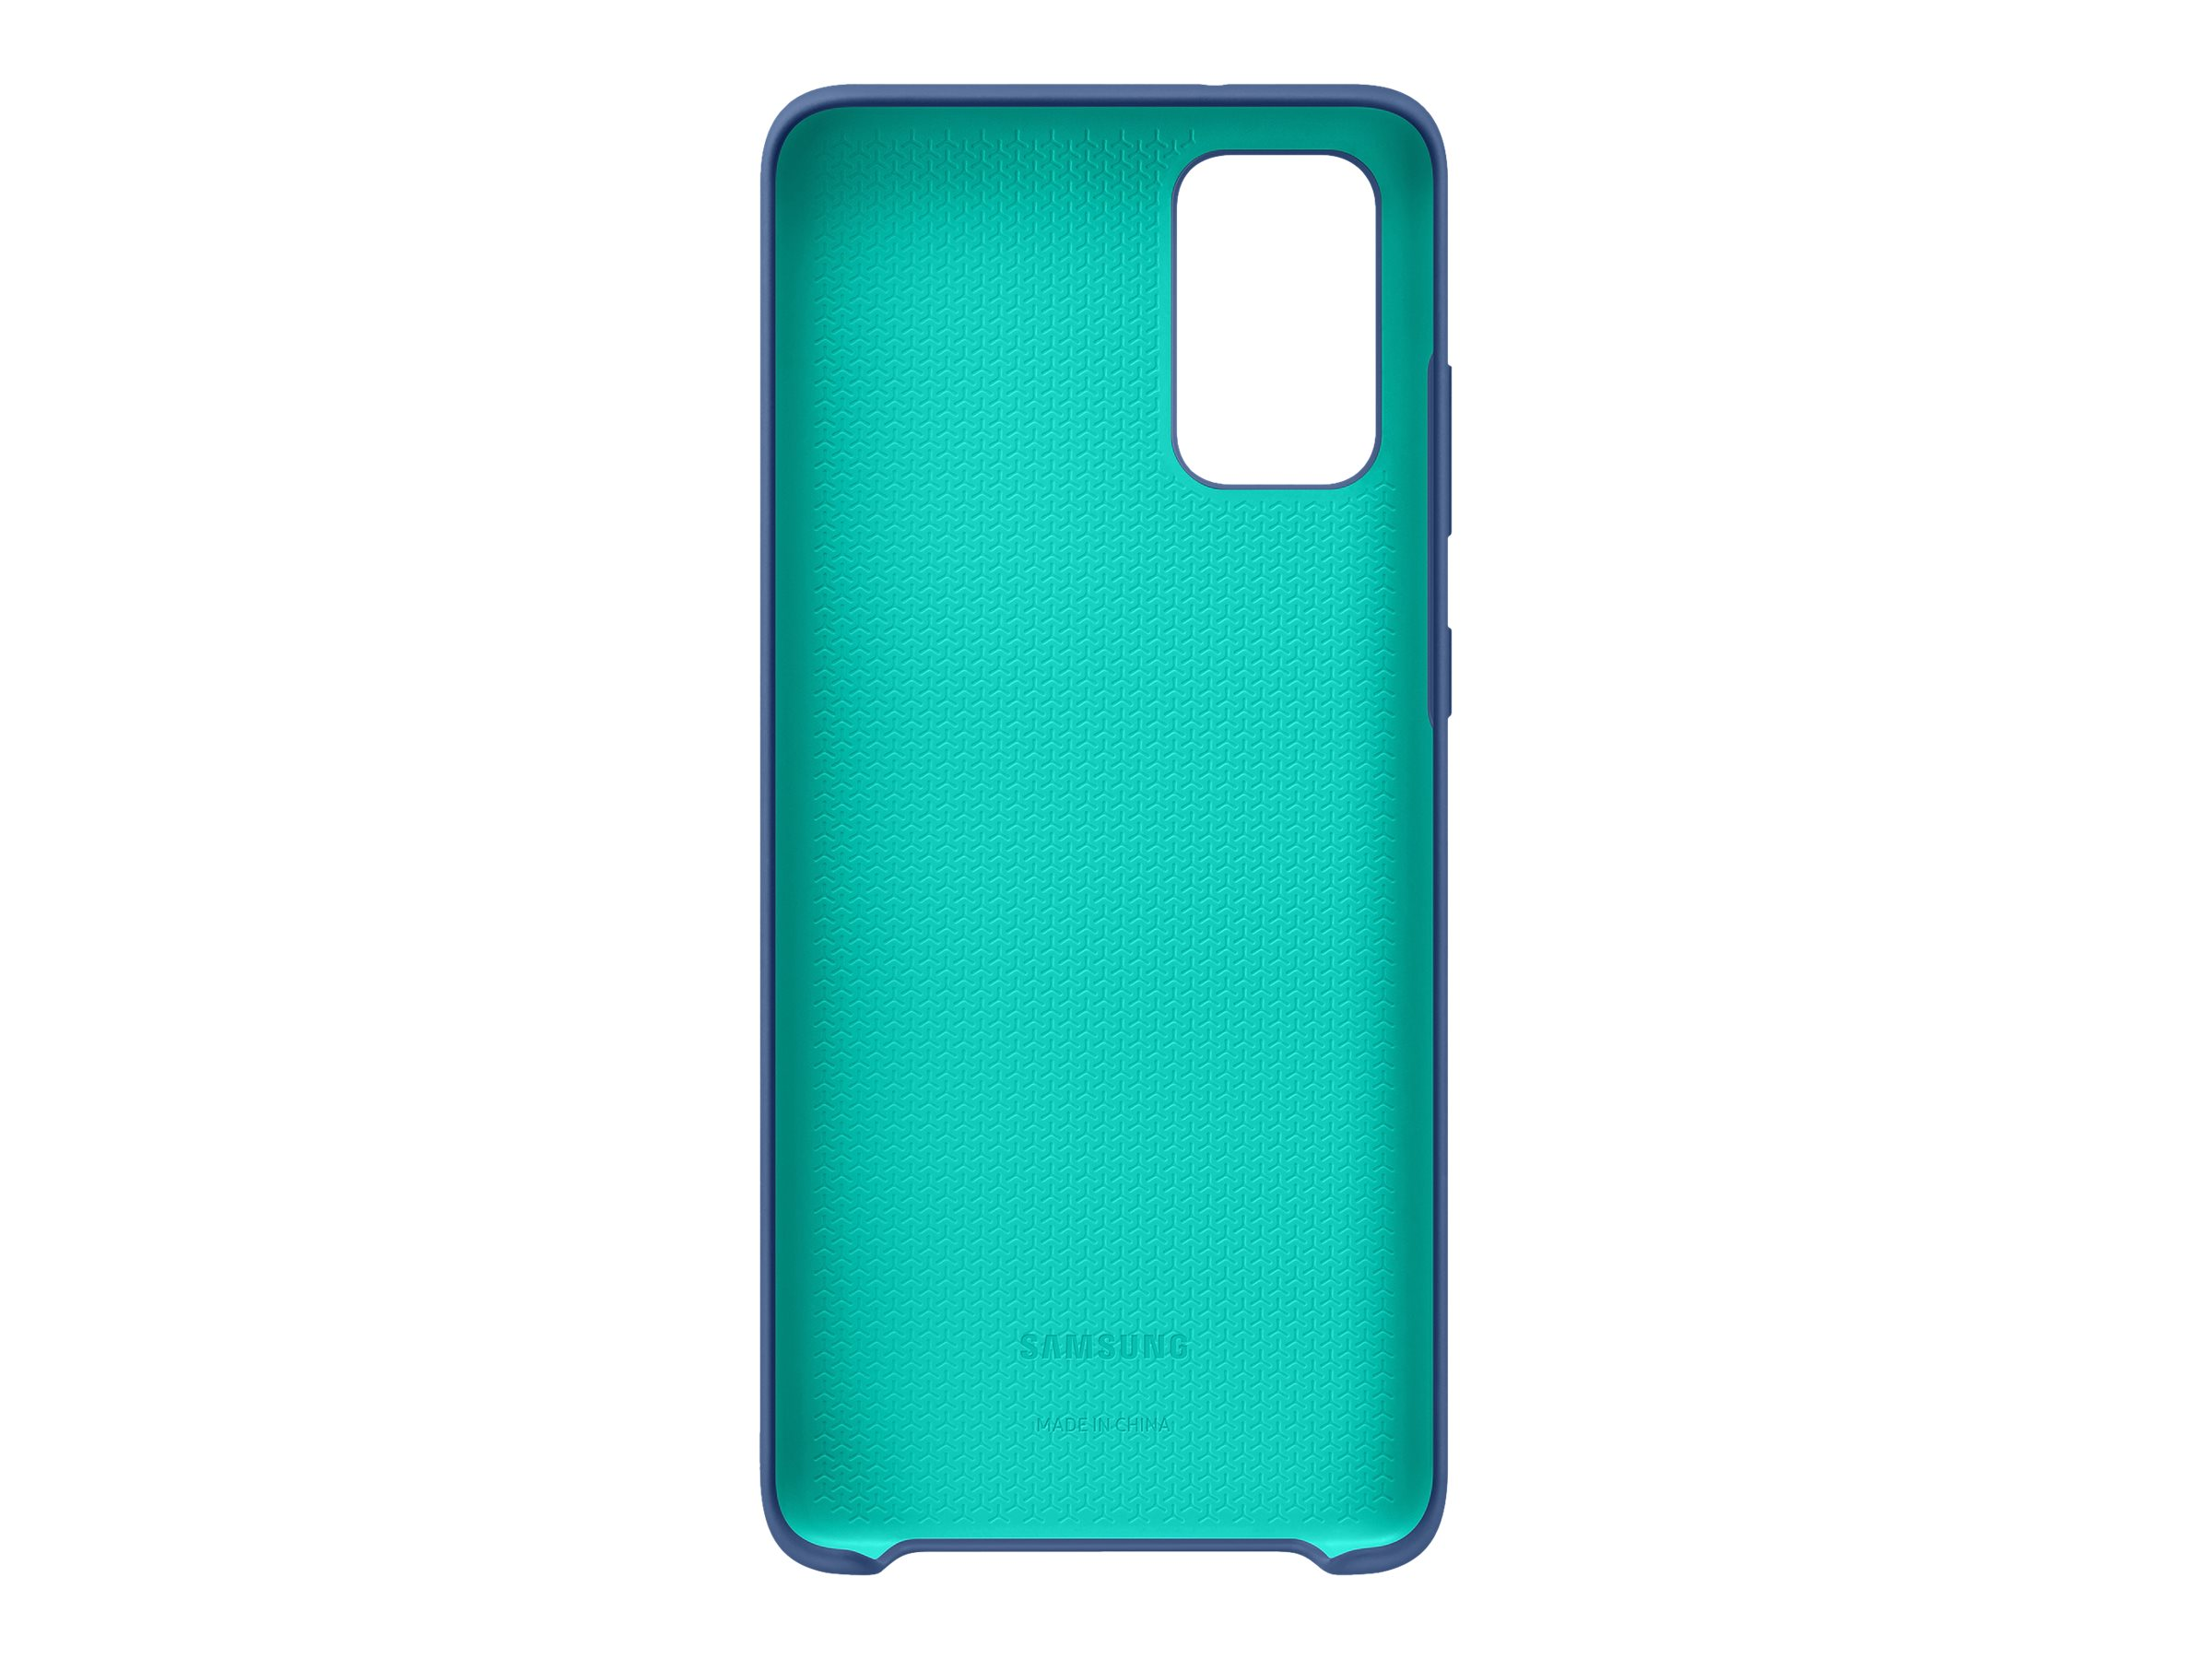 Samsung Silicone Cover EF-PG985 - back cover for cell phone